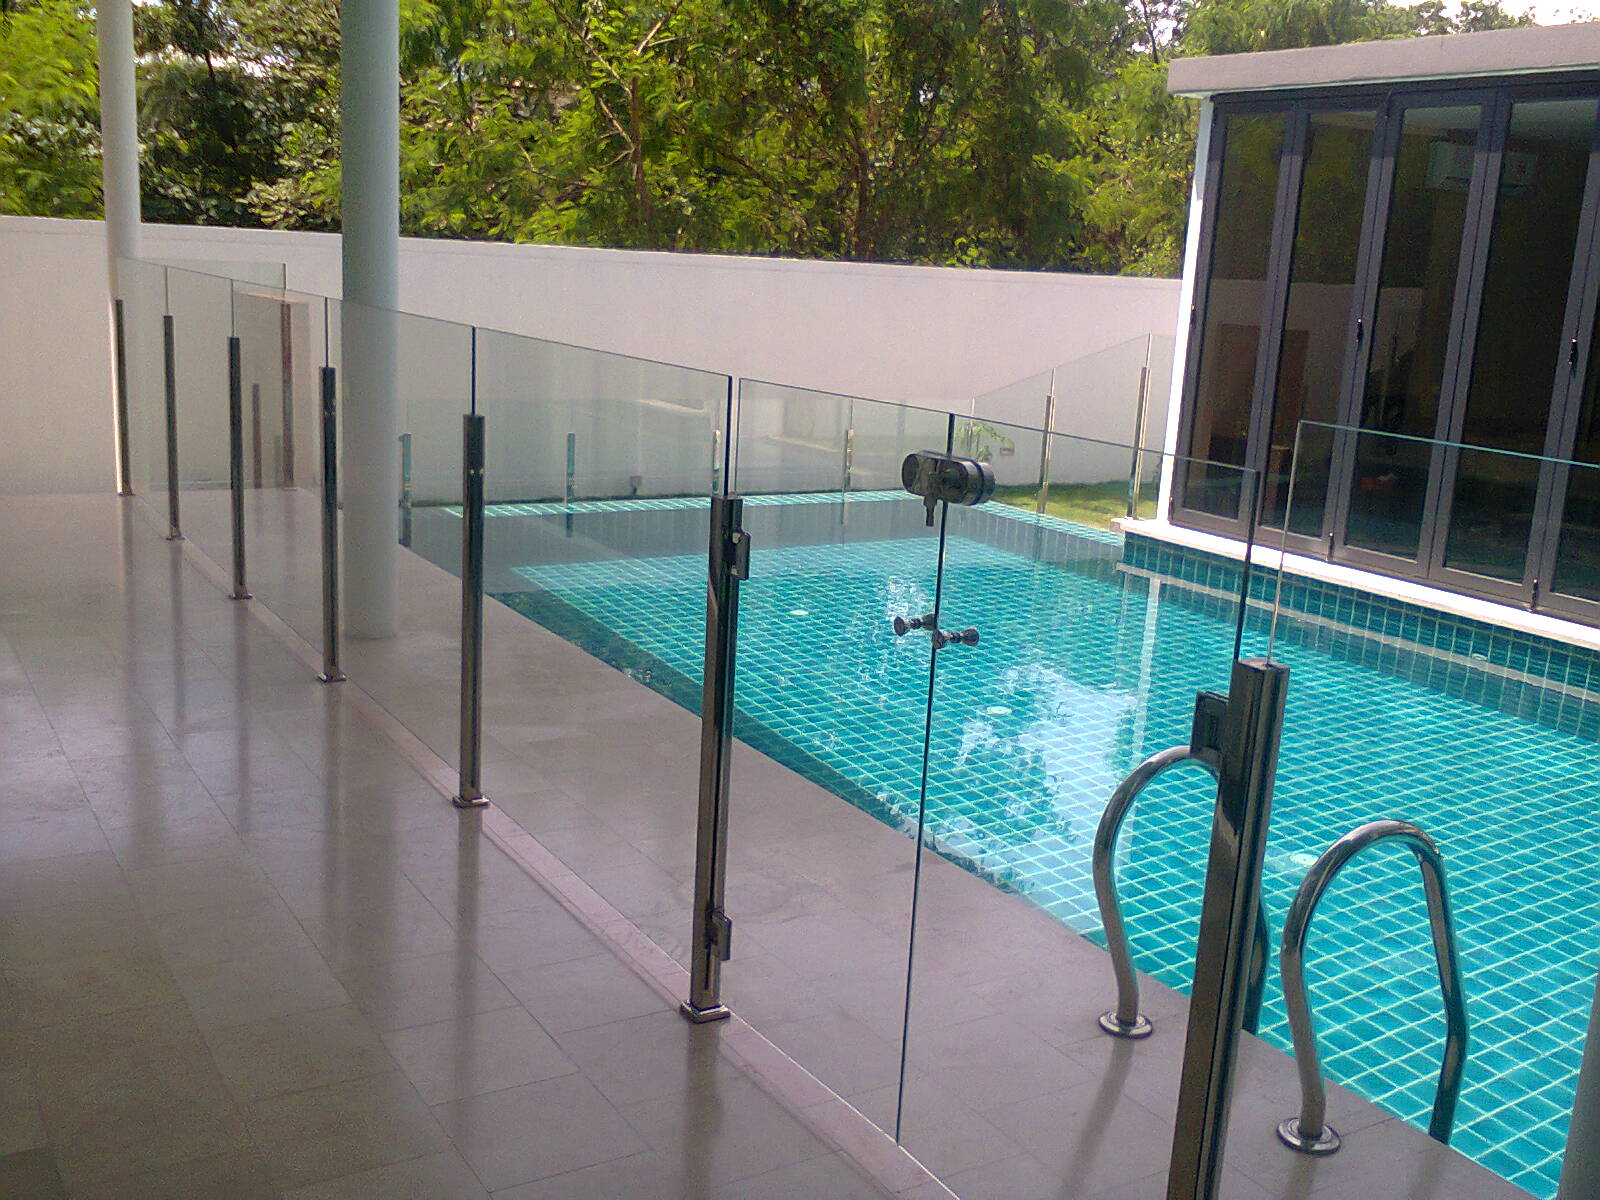 Swimming pool glass fence glass network malaysia for Glass pool fences